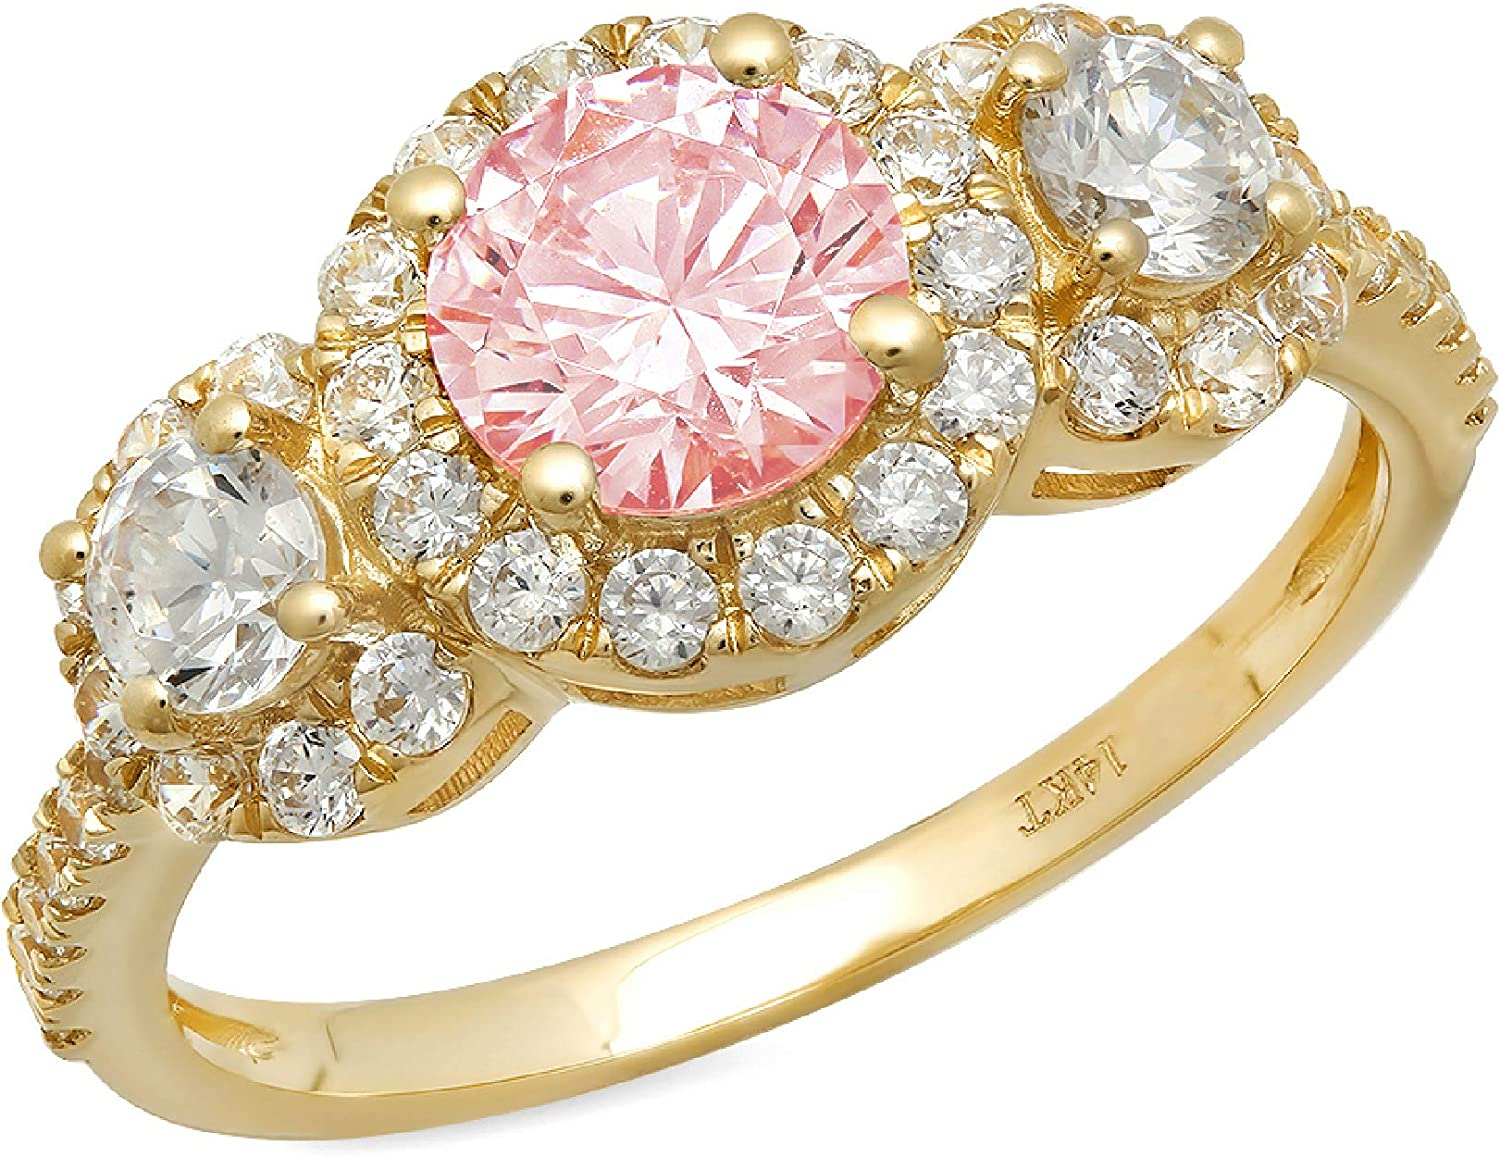 1.72ct Round Cut Halo Solitaire three stone With Accent Pink Simulated Diamond CZ VVS1 Designer Modern Statement Ring Solid 14k Yellow Gold Clara Pucci